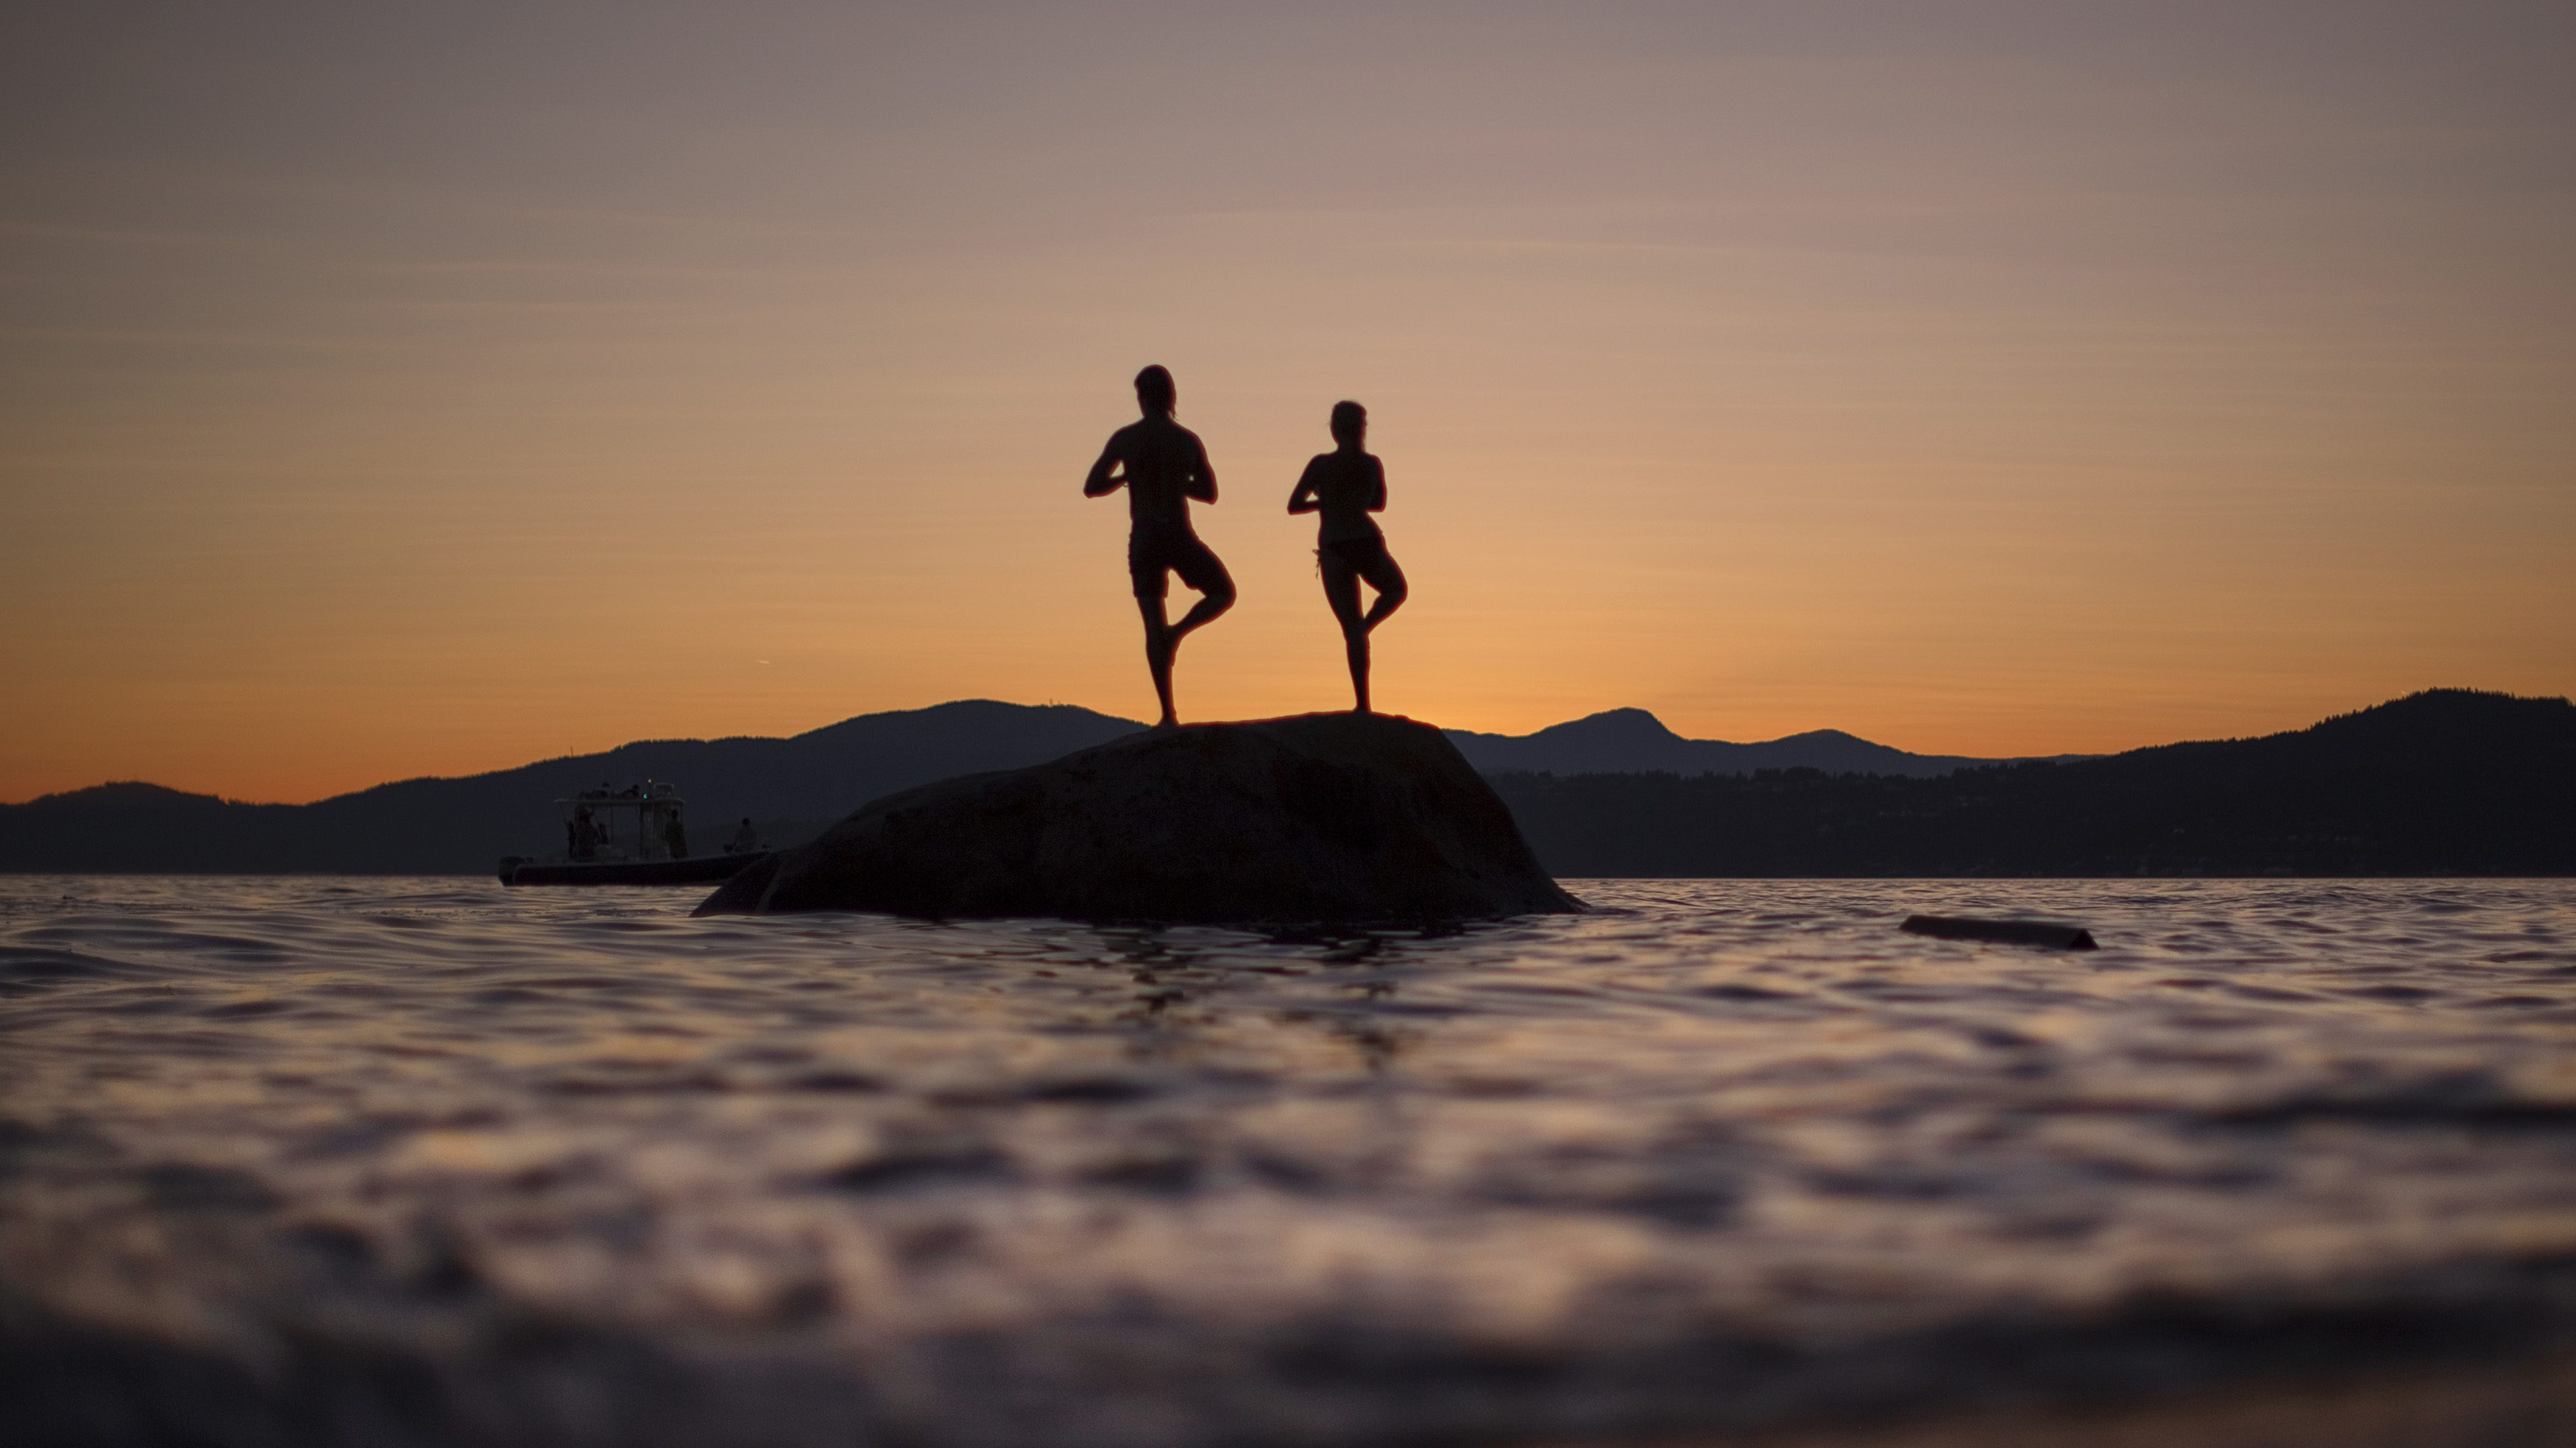 Two people stand on a rock facing the sunse